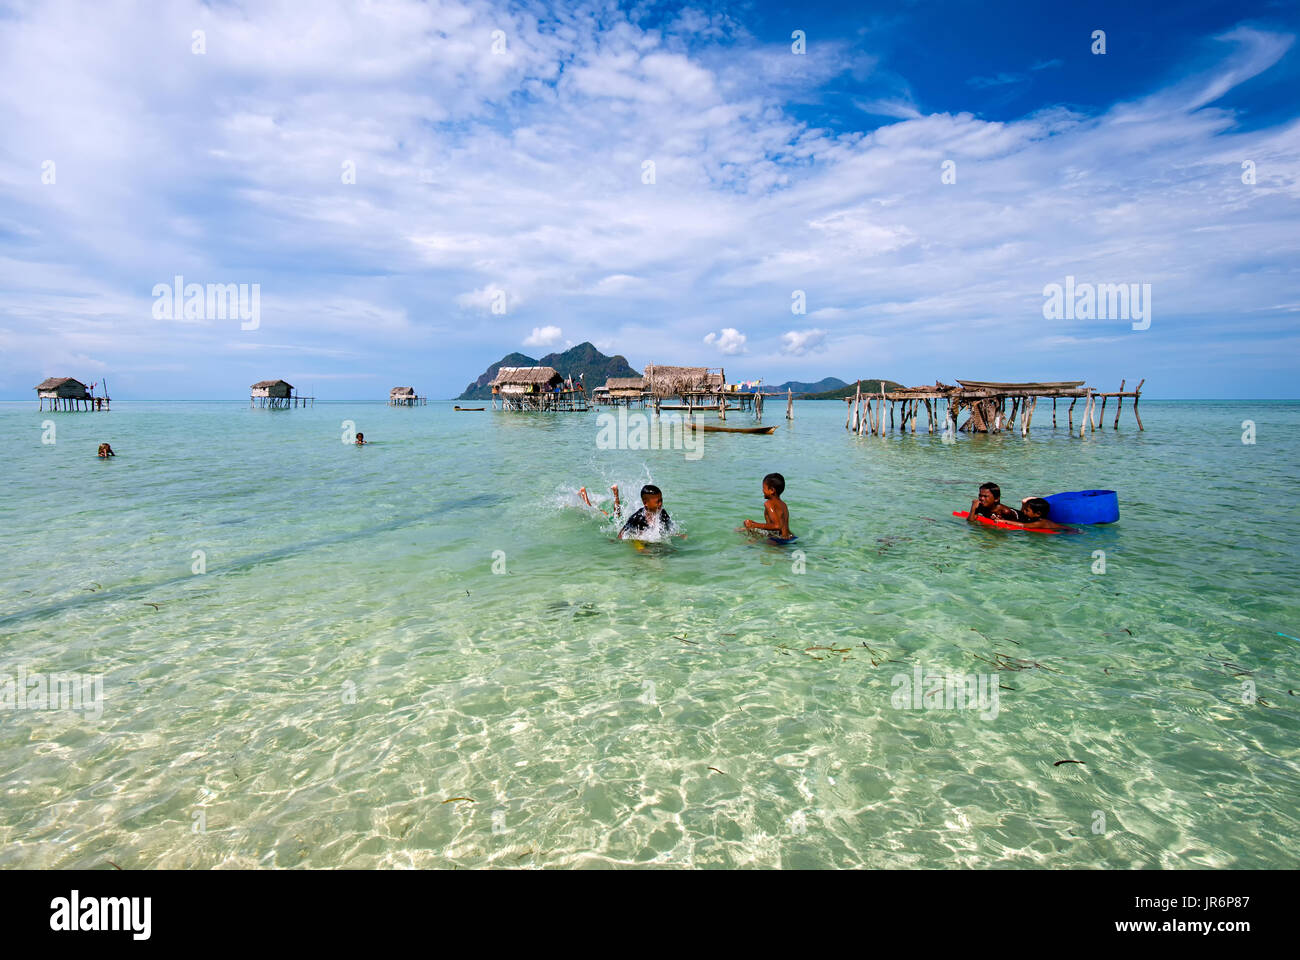 Semporna, Malaysia - April 17, 2015: Young bajau laut  boys playing at the beach in Maiga Island in the vicinity of Sipidan Island and Tun Sakaran Mar - Stock Image